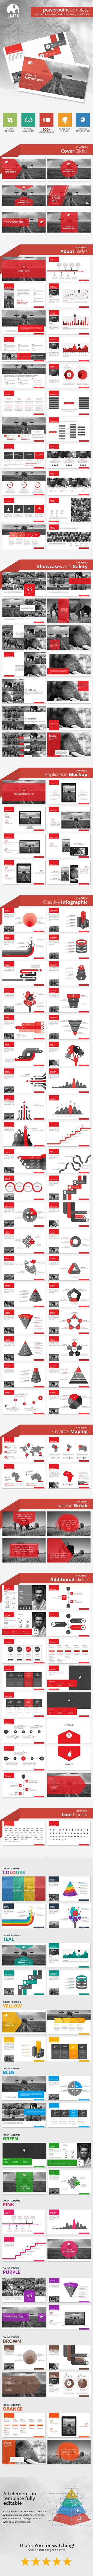 Gajah - Annual Report Powerpoint Template (Powerpoint Templates)  preview: